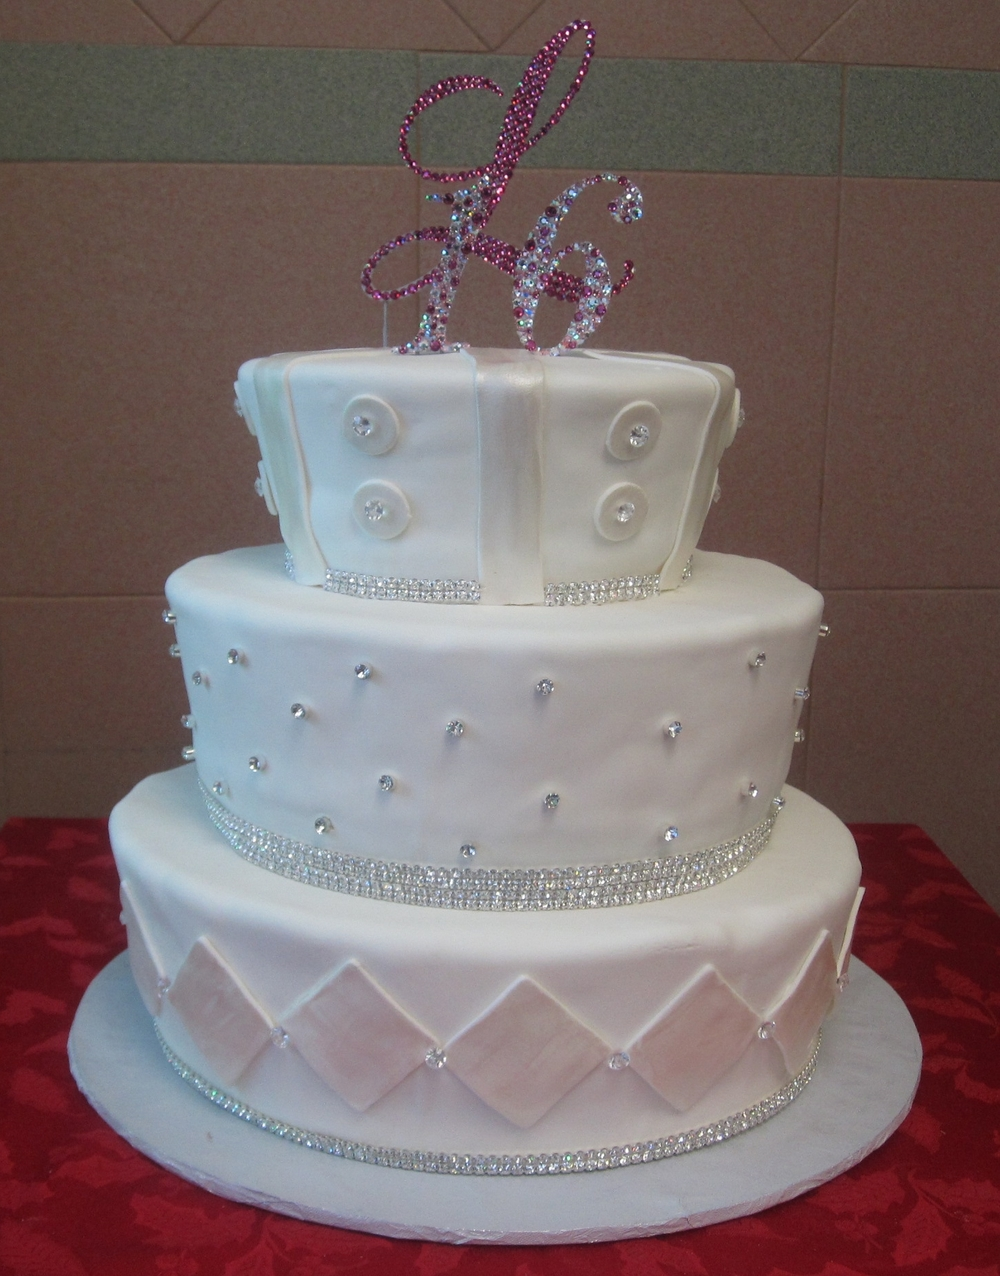 BeveledHigherTiers.crystals.cutouts.pins.pearlizing.caketopnot.inc.jpg